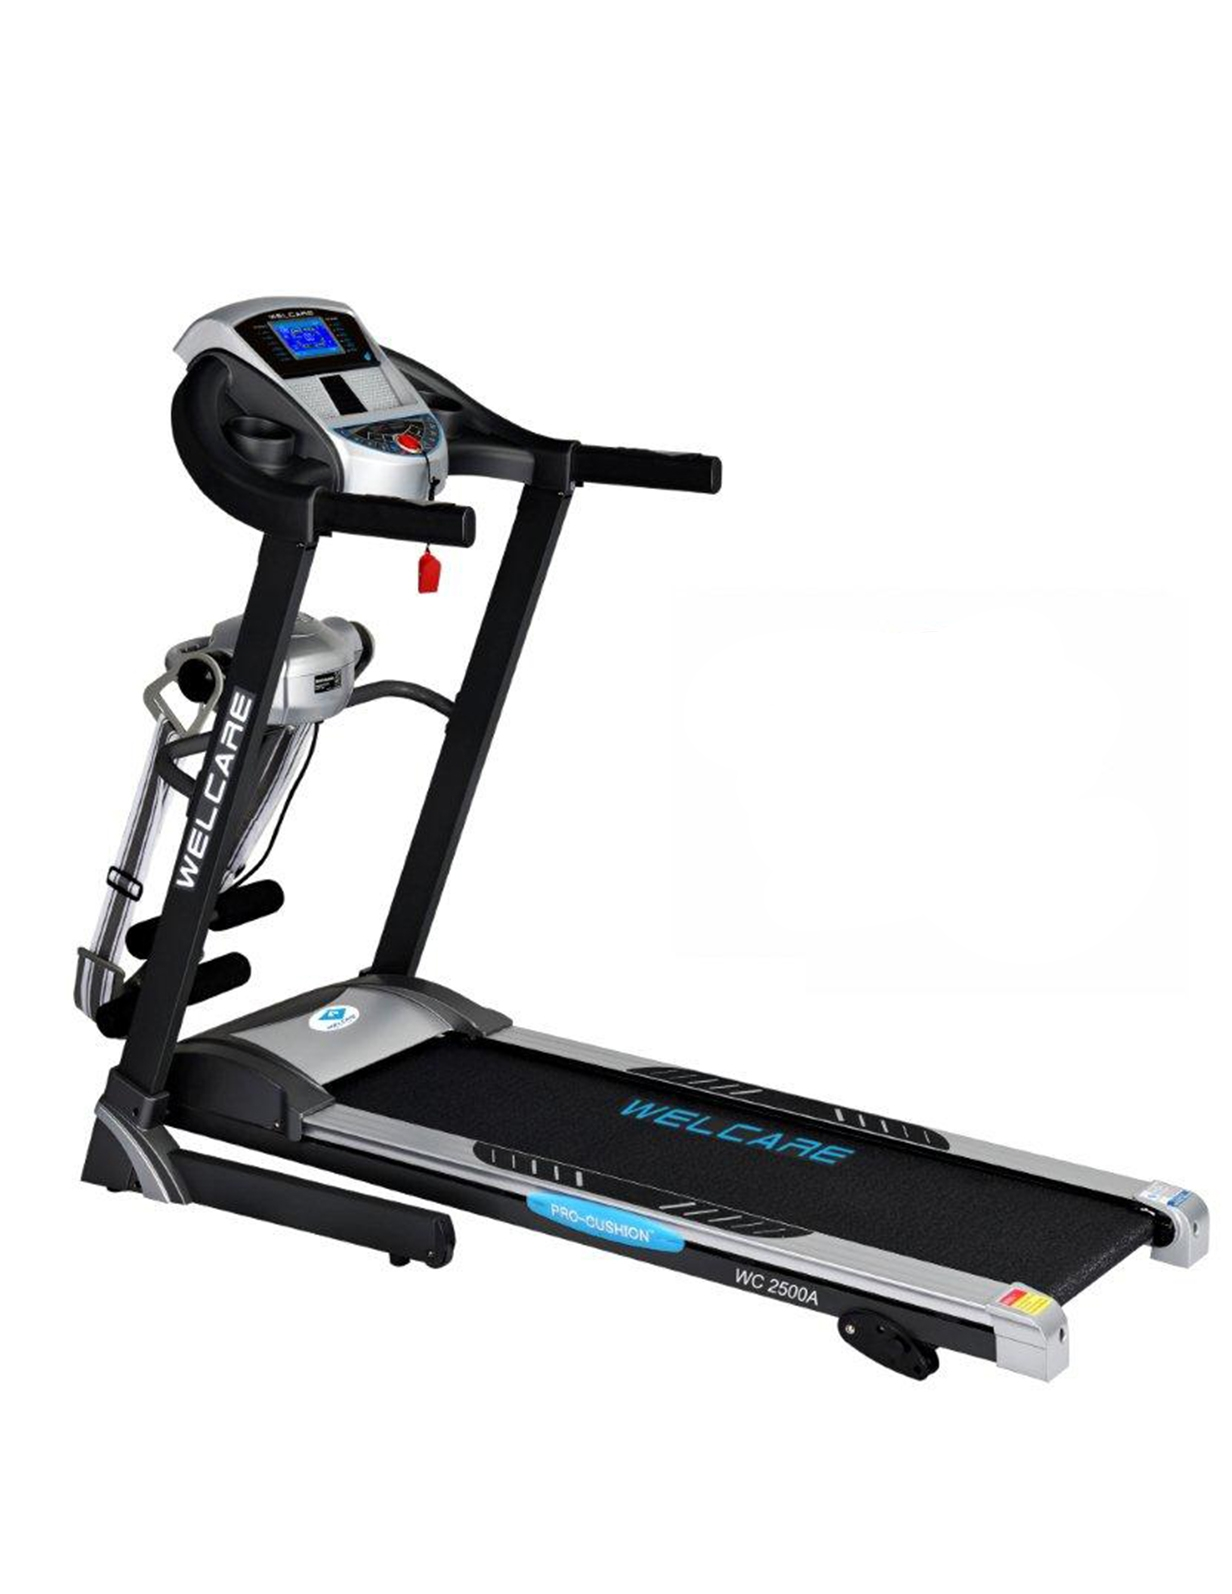 WC 2500A DC MOTORIZED  TREADMILL